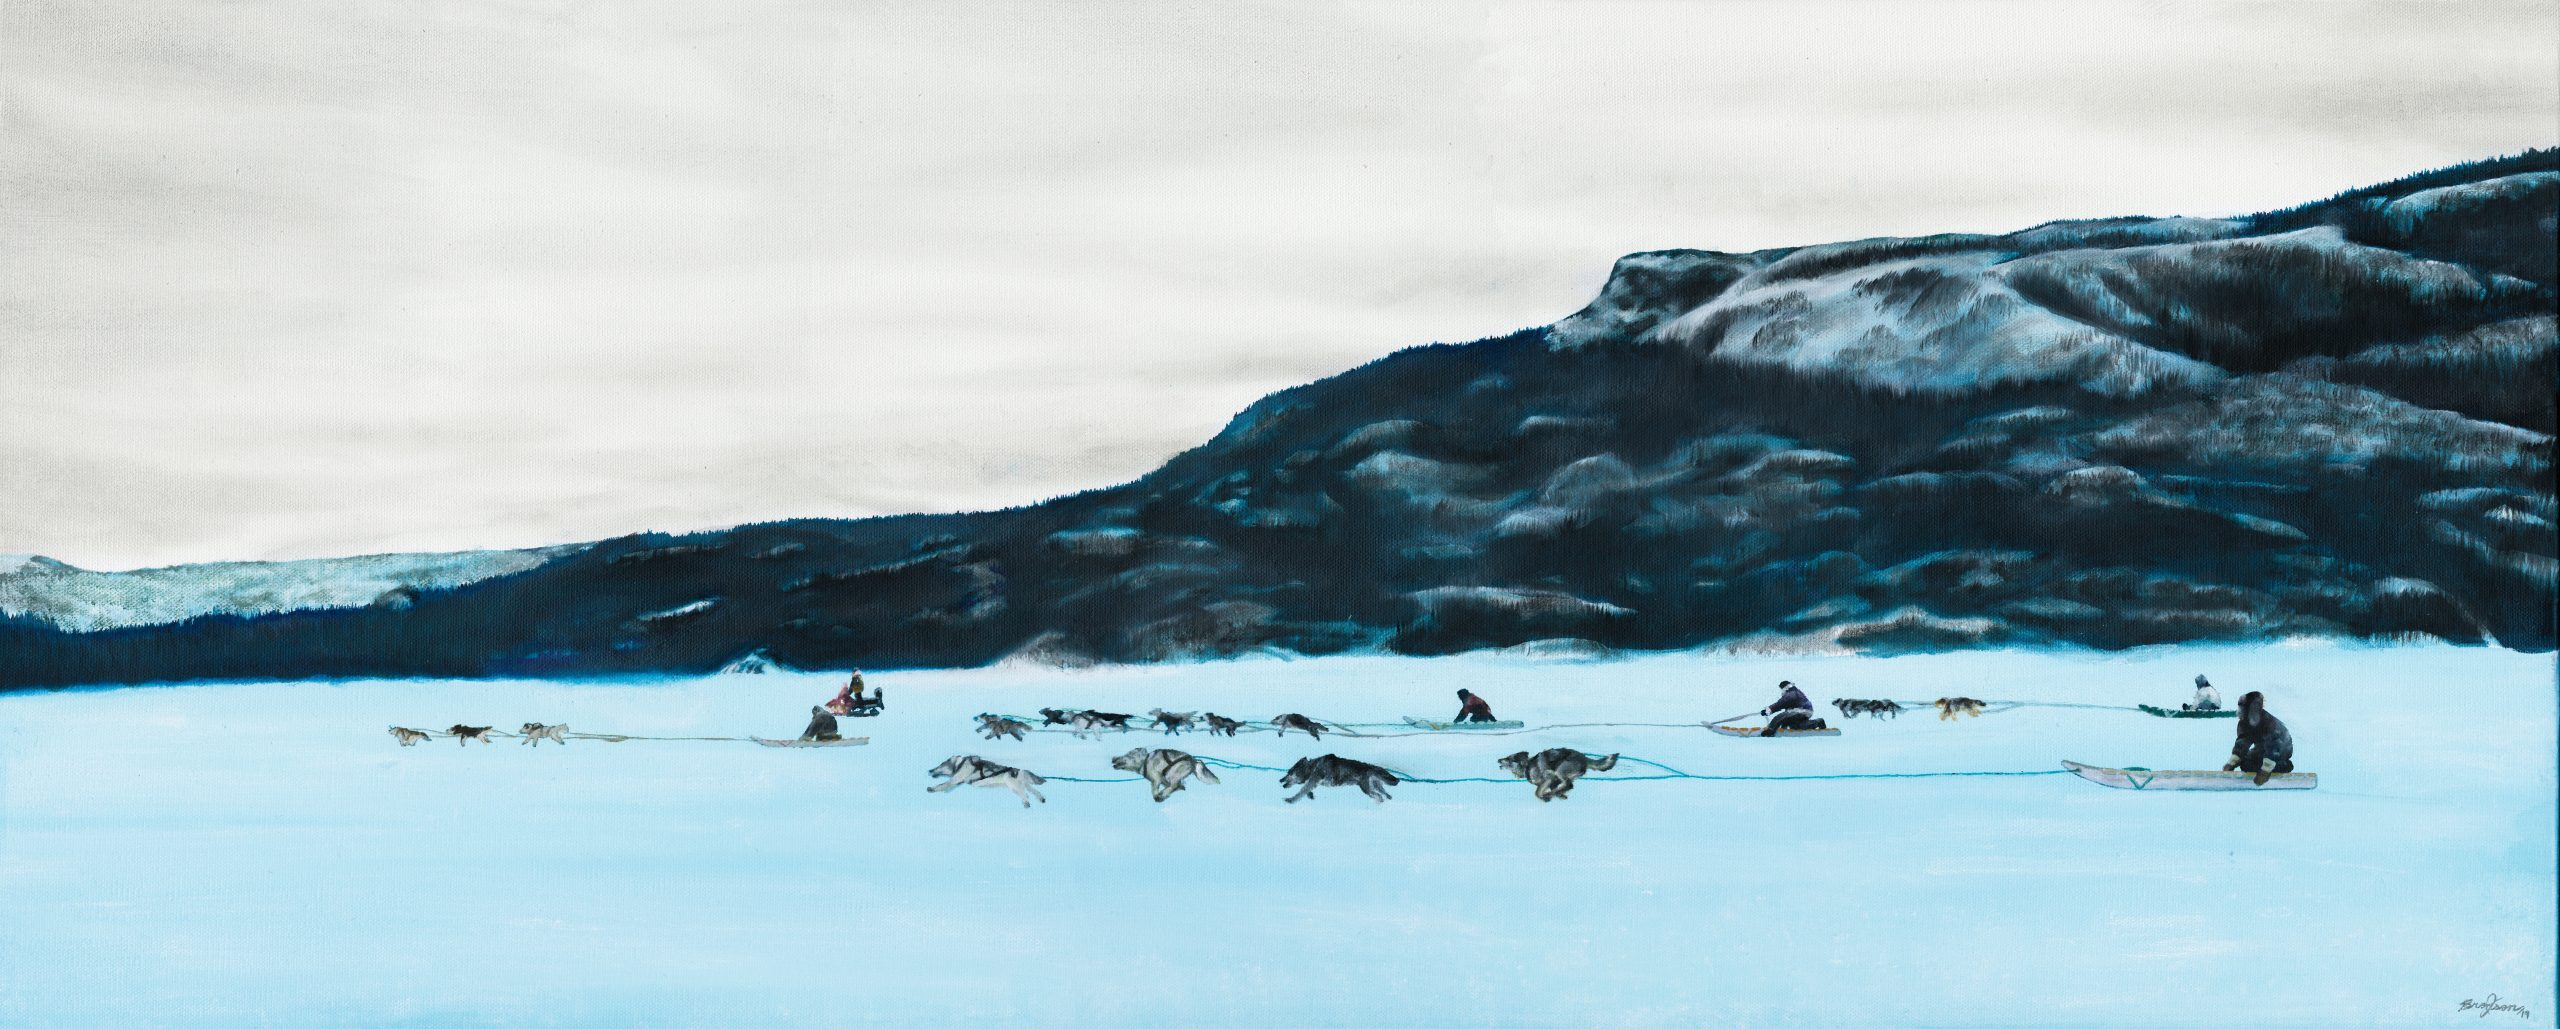 Heritage Dog Team Race painting by Bronson Jacque, showing teams of dog sleds running and a rocky crag in the distance